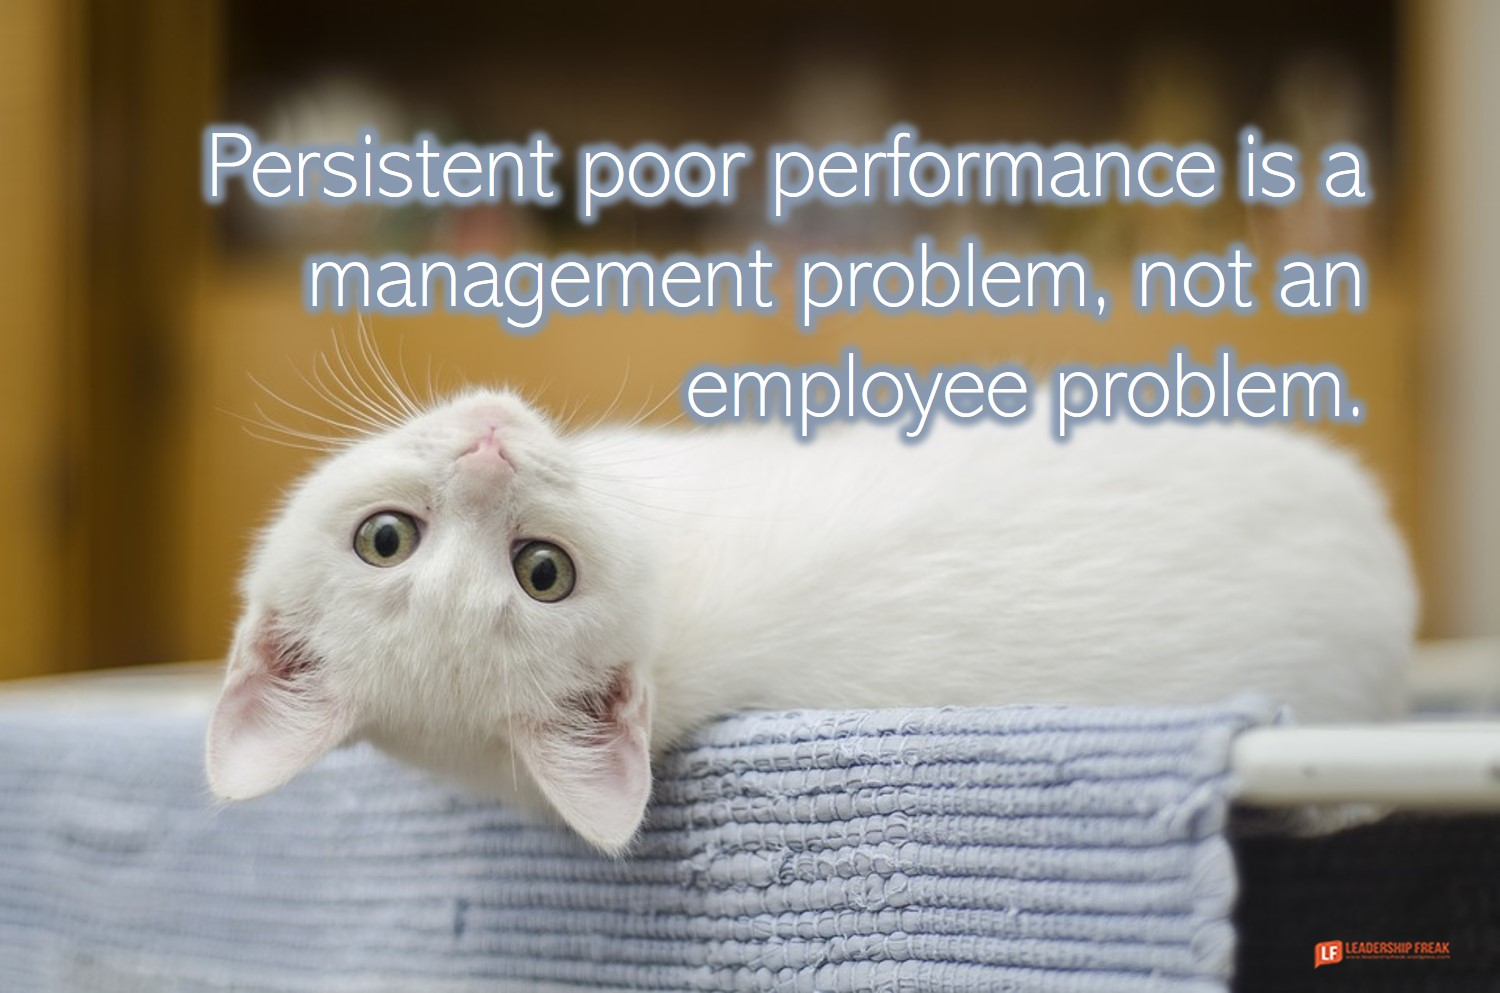 Upside down cat.  Persistent poor performance is a management problem, not an employee problem.